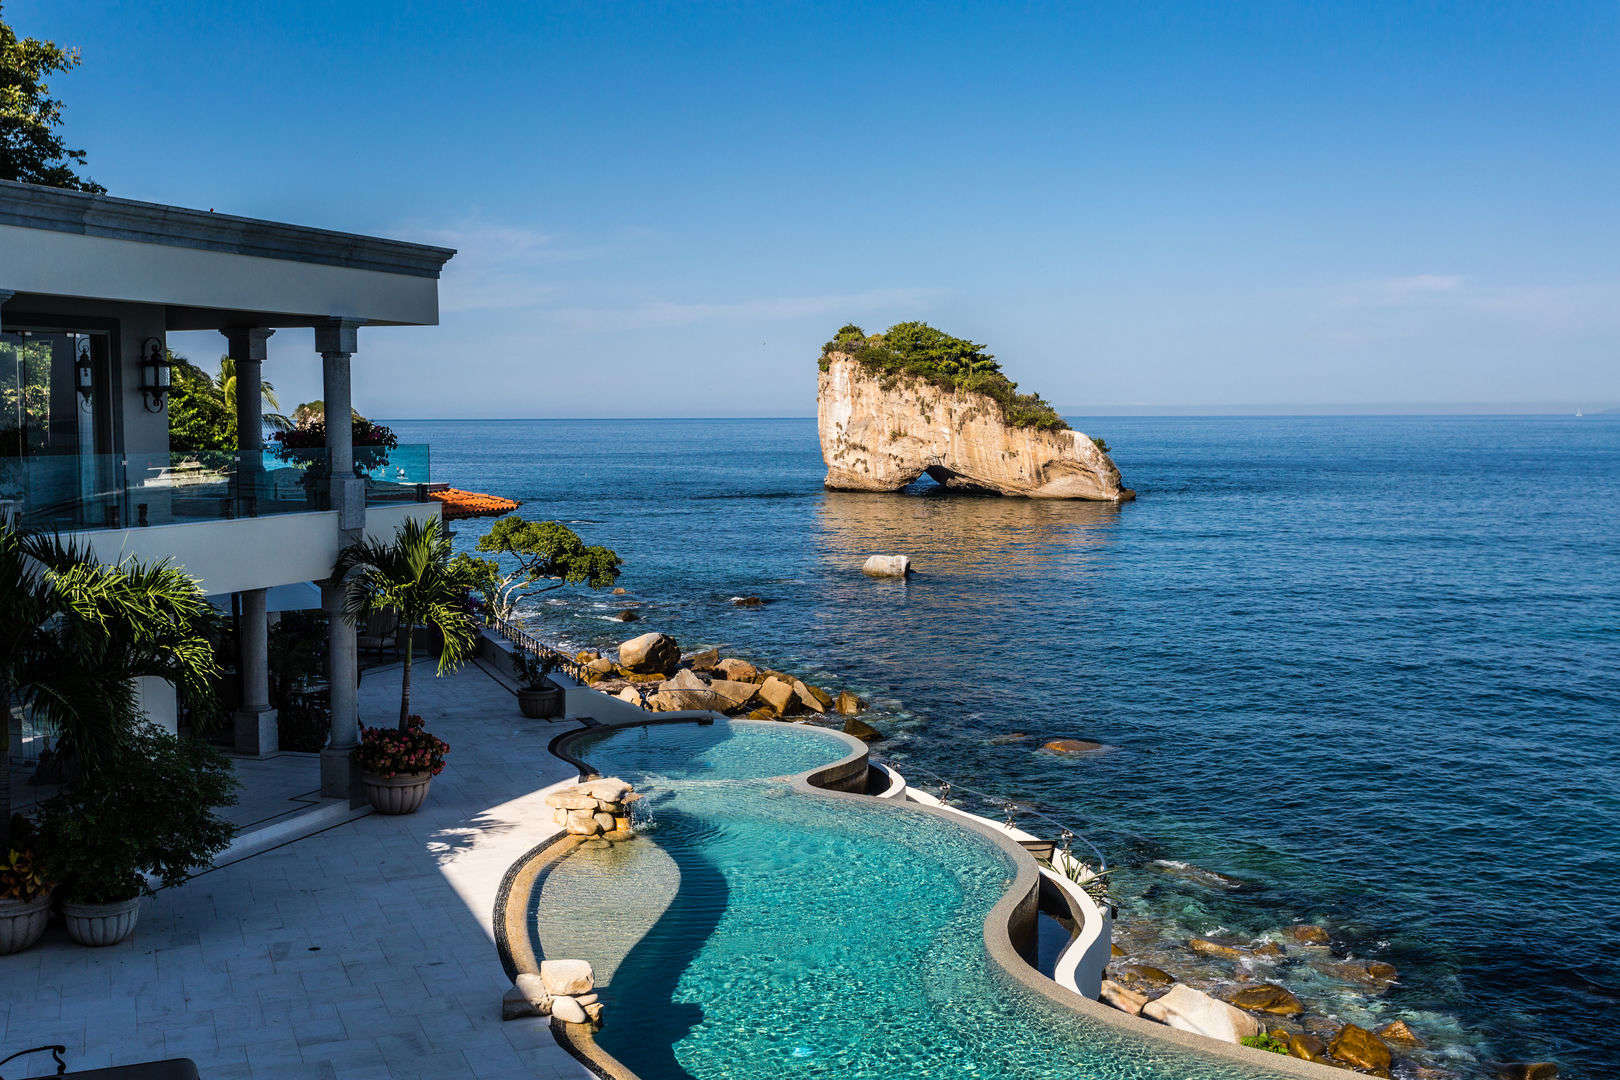 Luxury vacation rentals mexico - Puerto vallarta - Mismaloya beach - No location 4 - Casa Nautica - Image 1/24